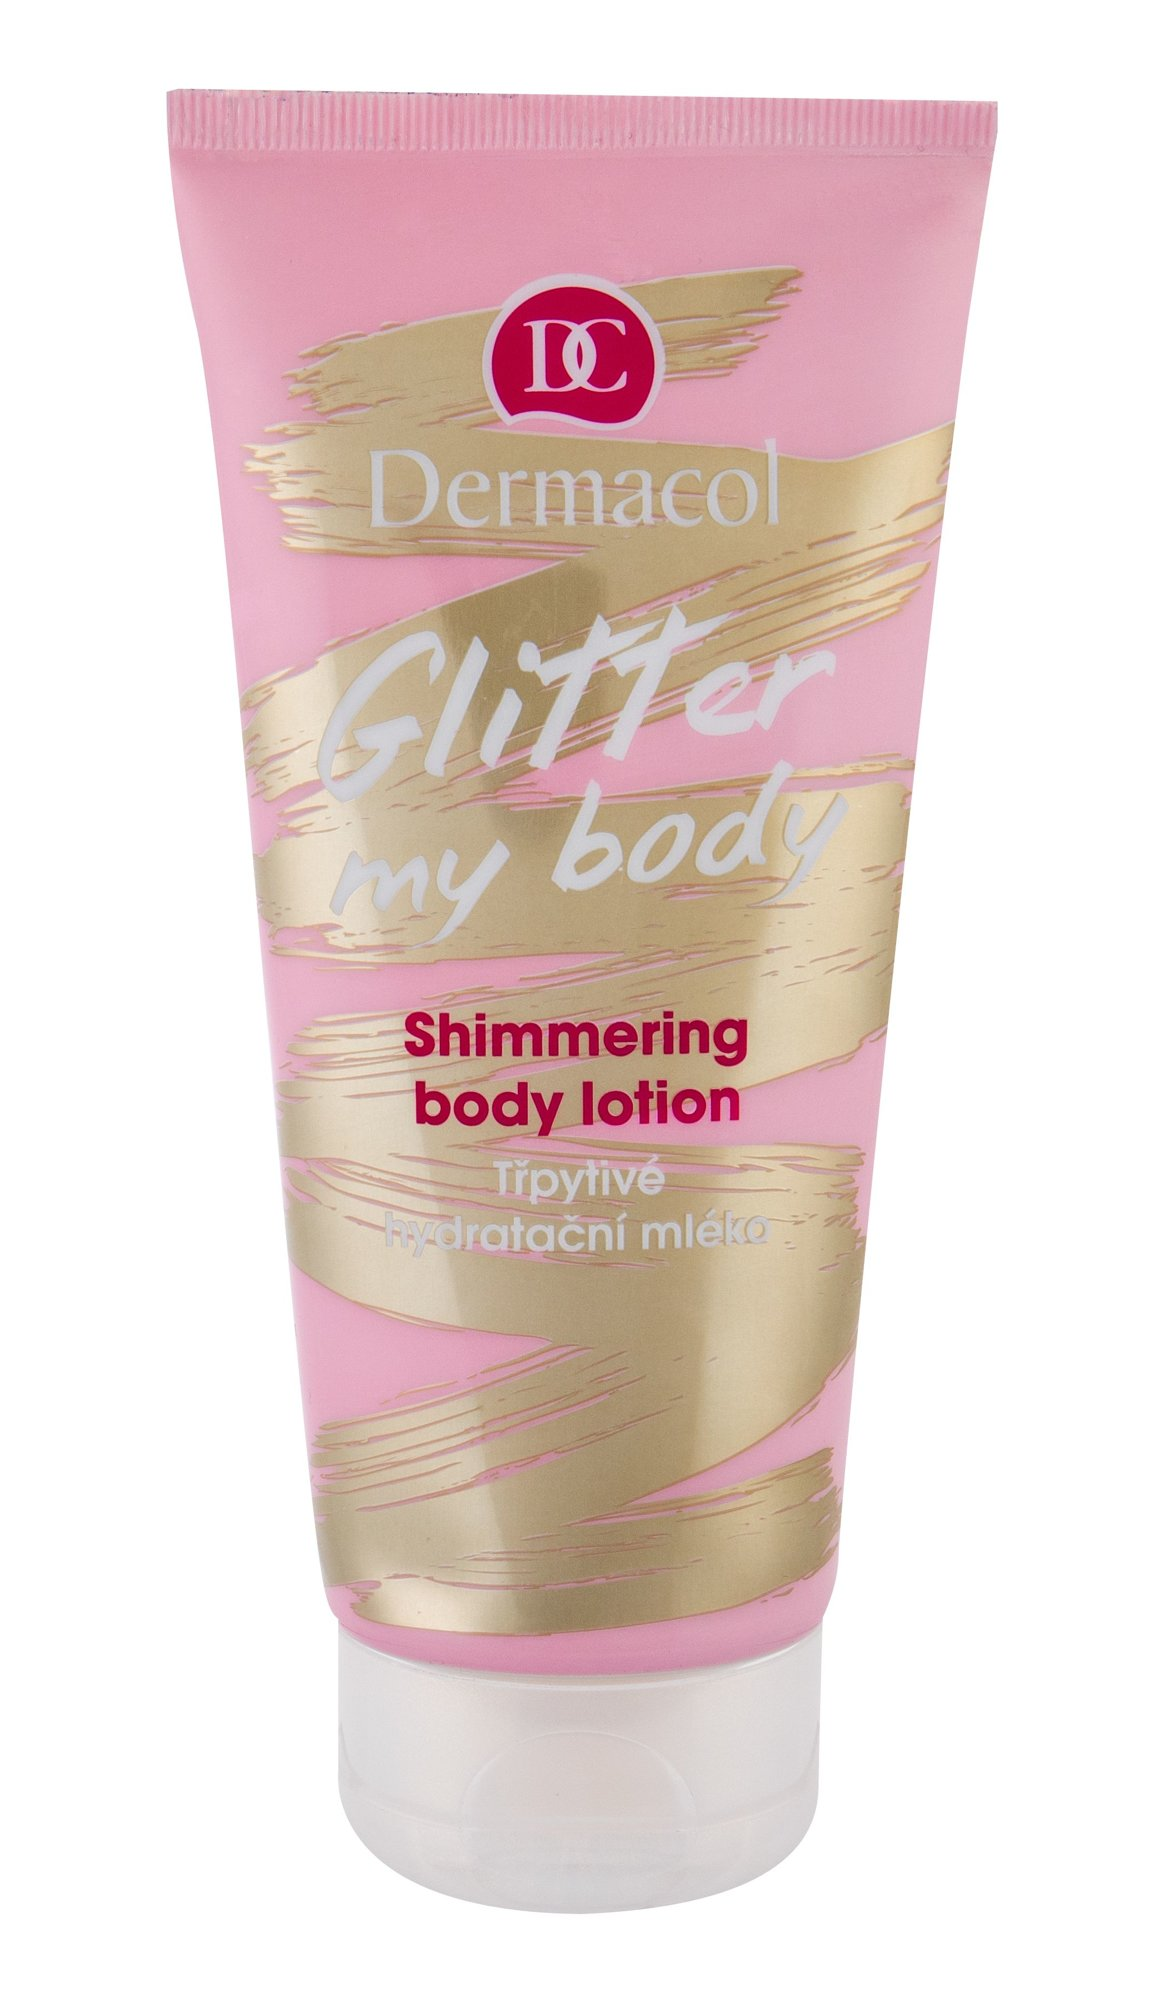 Dermacol Glitter My Body Body Lotion 200ml